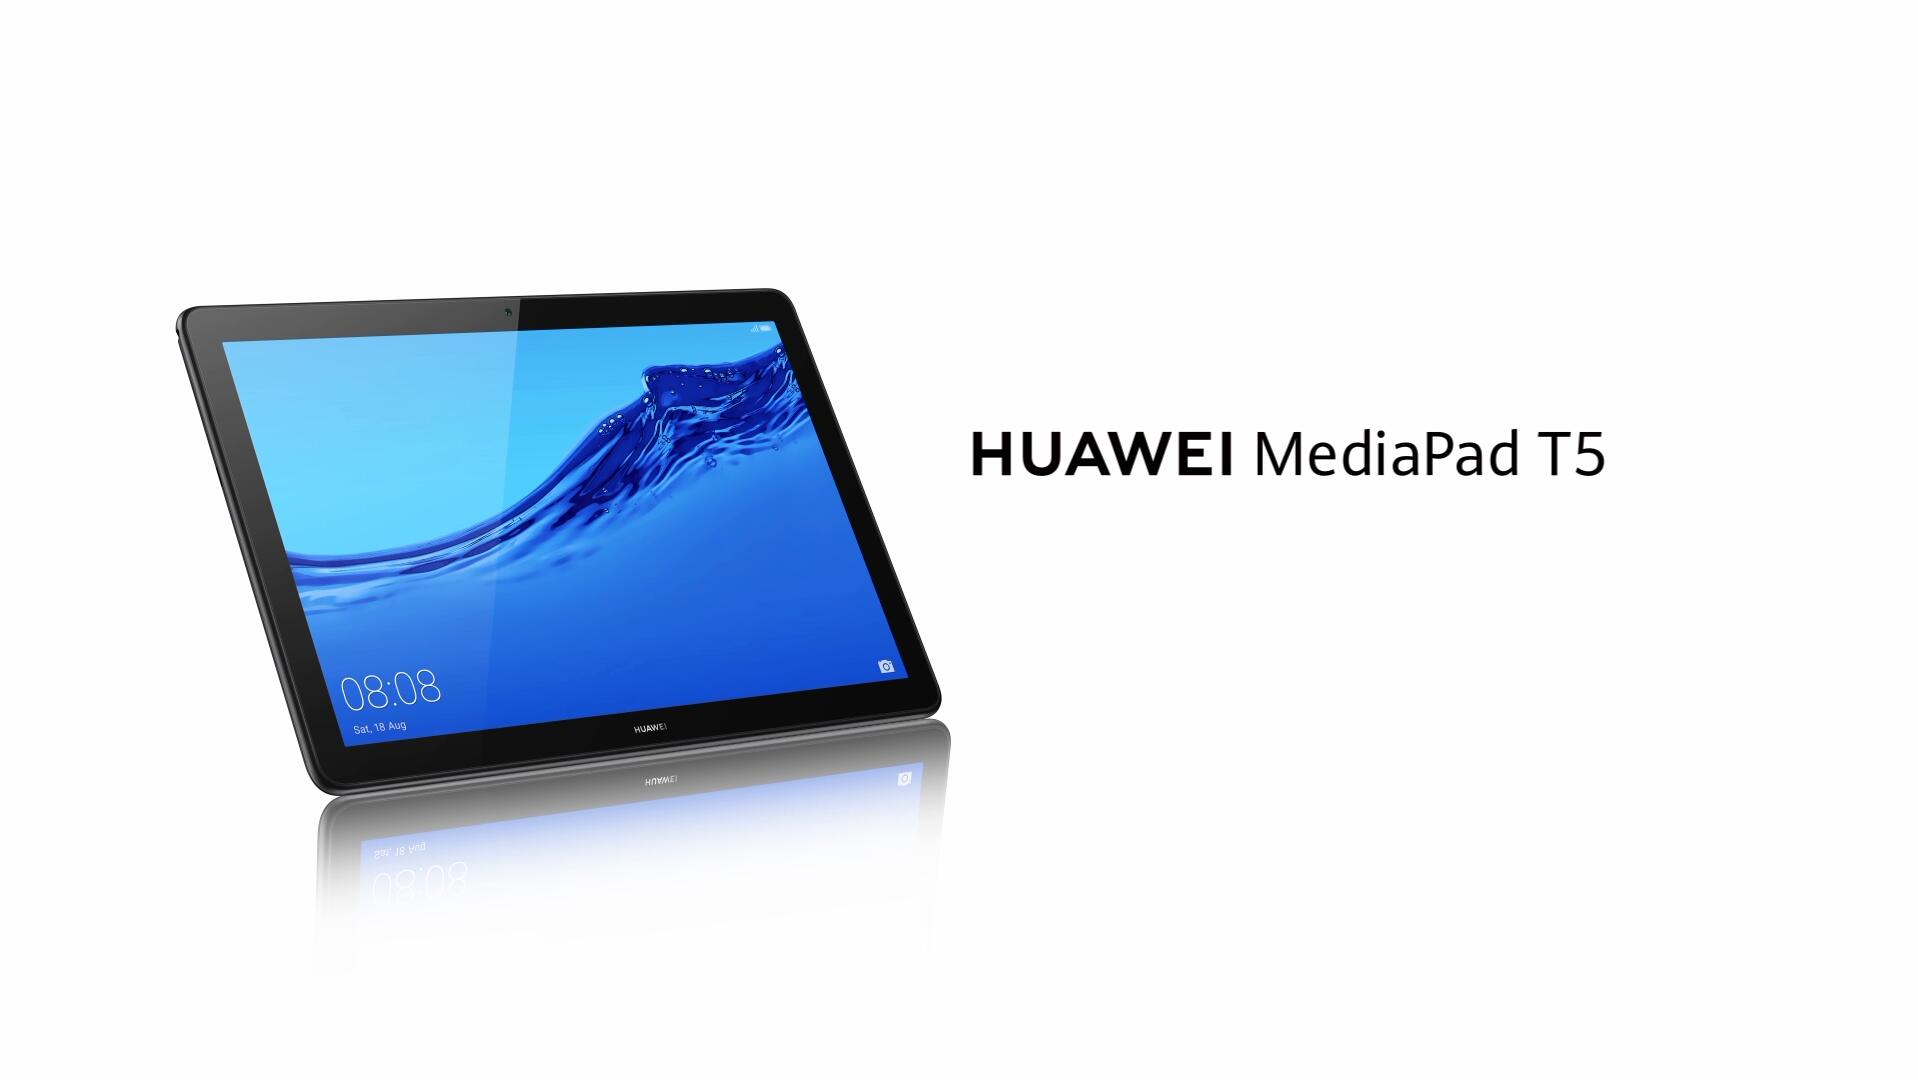 "Huawei MediaPad T5 Tablet with 10.1"" IPS FHD Display, Octa Core, Dual Harman Kardon-Tuned Speakers, WiFi Only, 2GB+16GB, Black (US Warranty)"